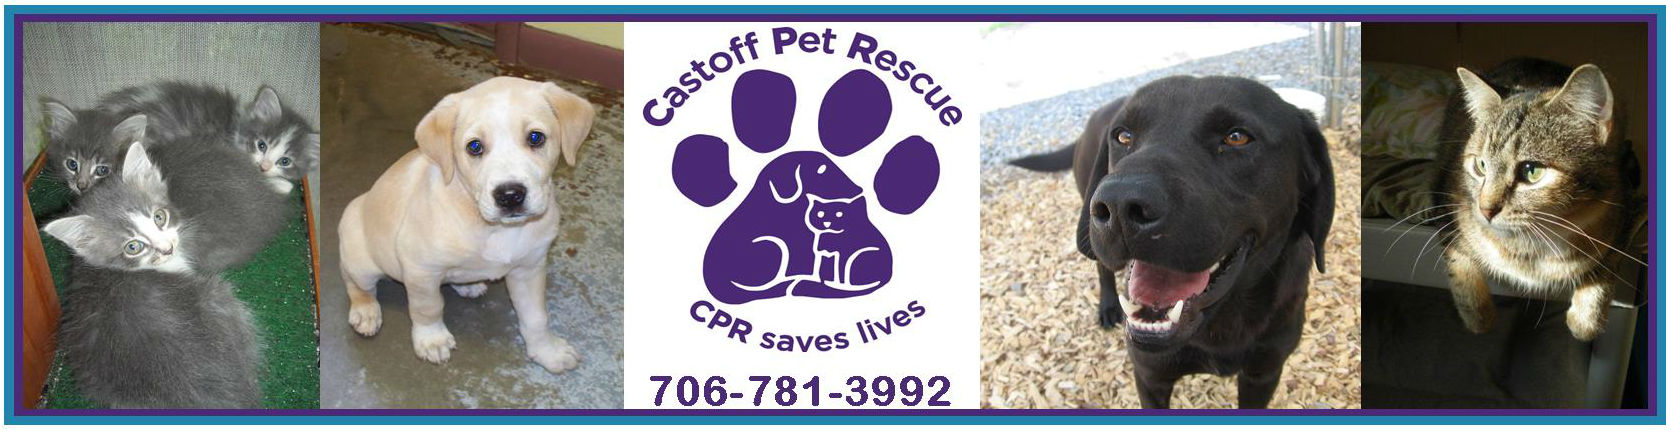 Castoff Pet Rescue